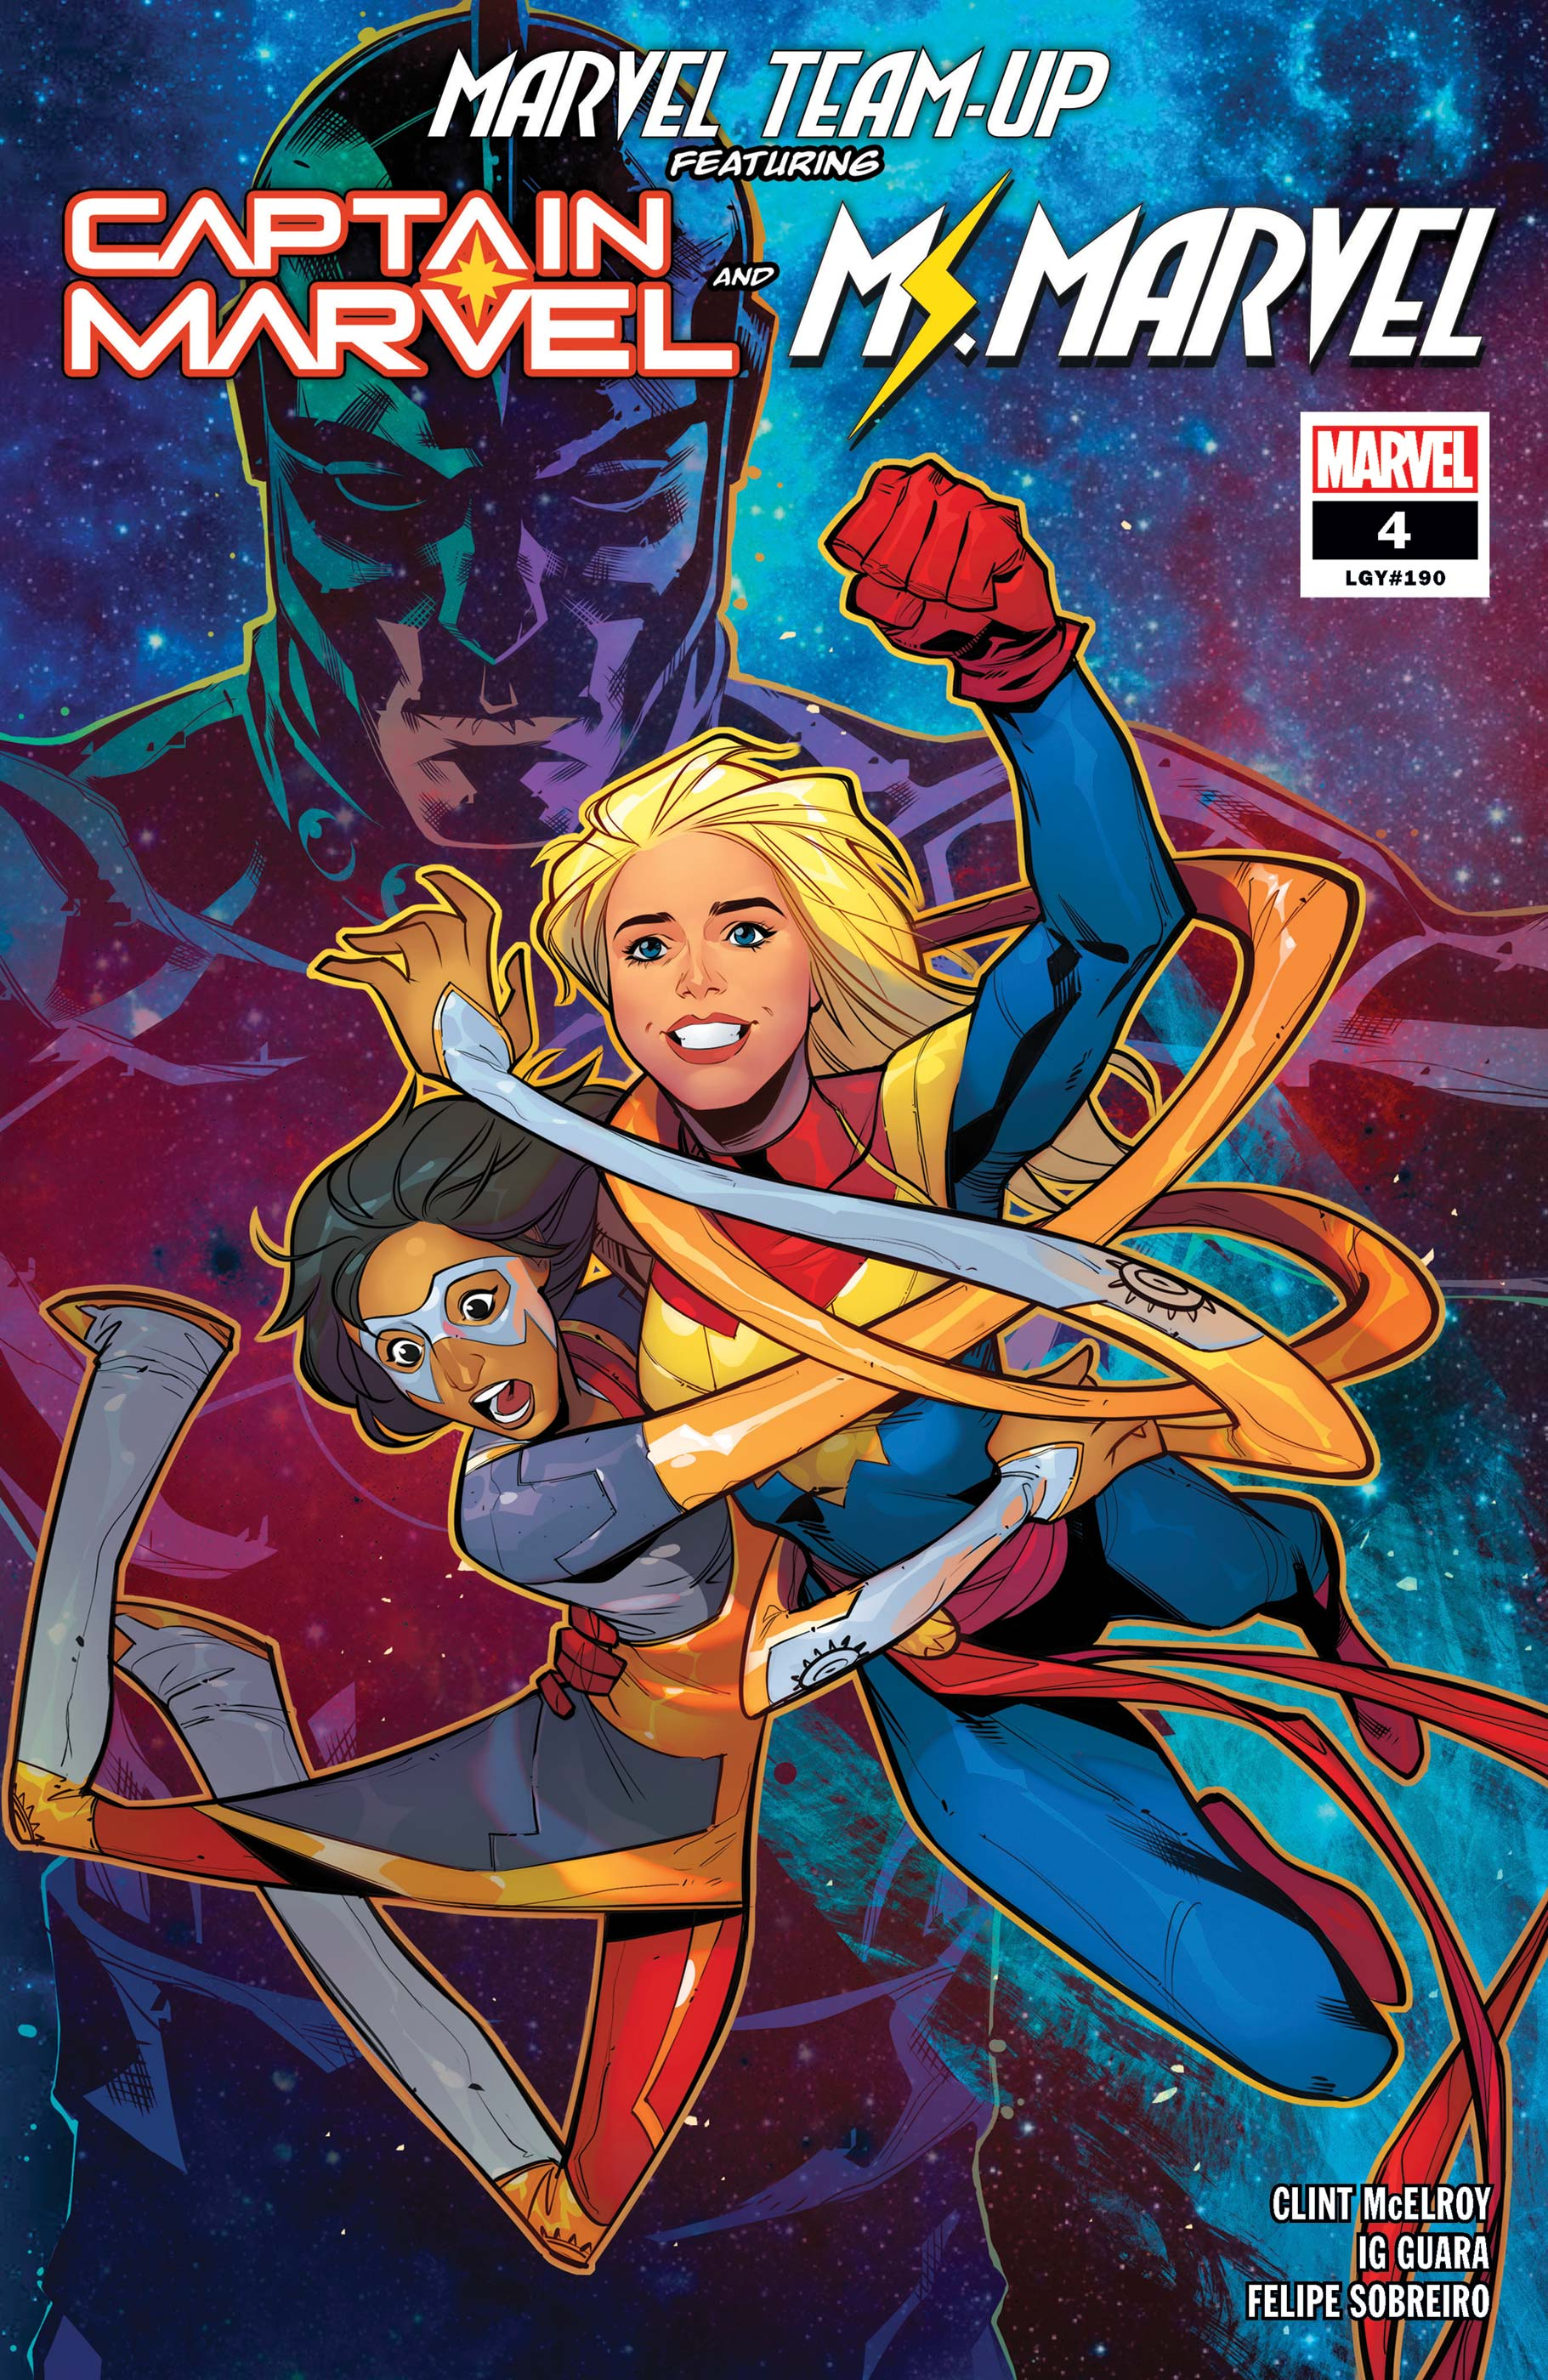 Marvel Team-Up (2019) #4